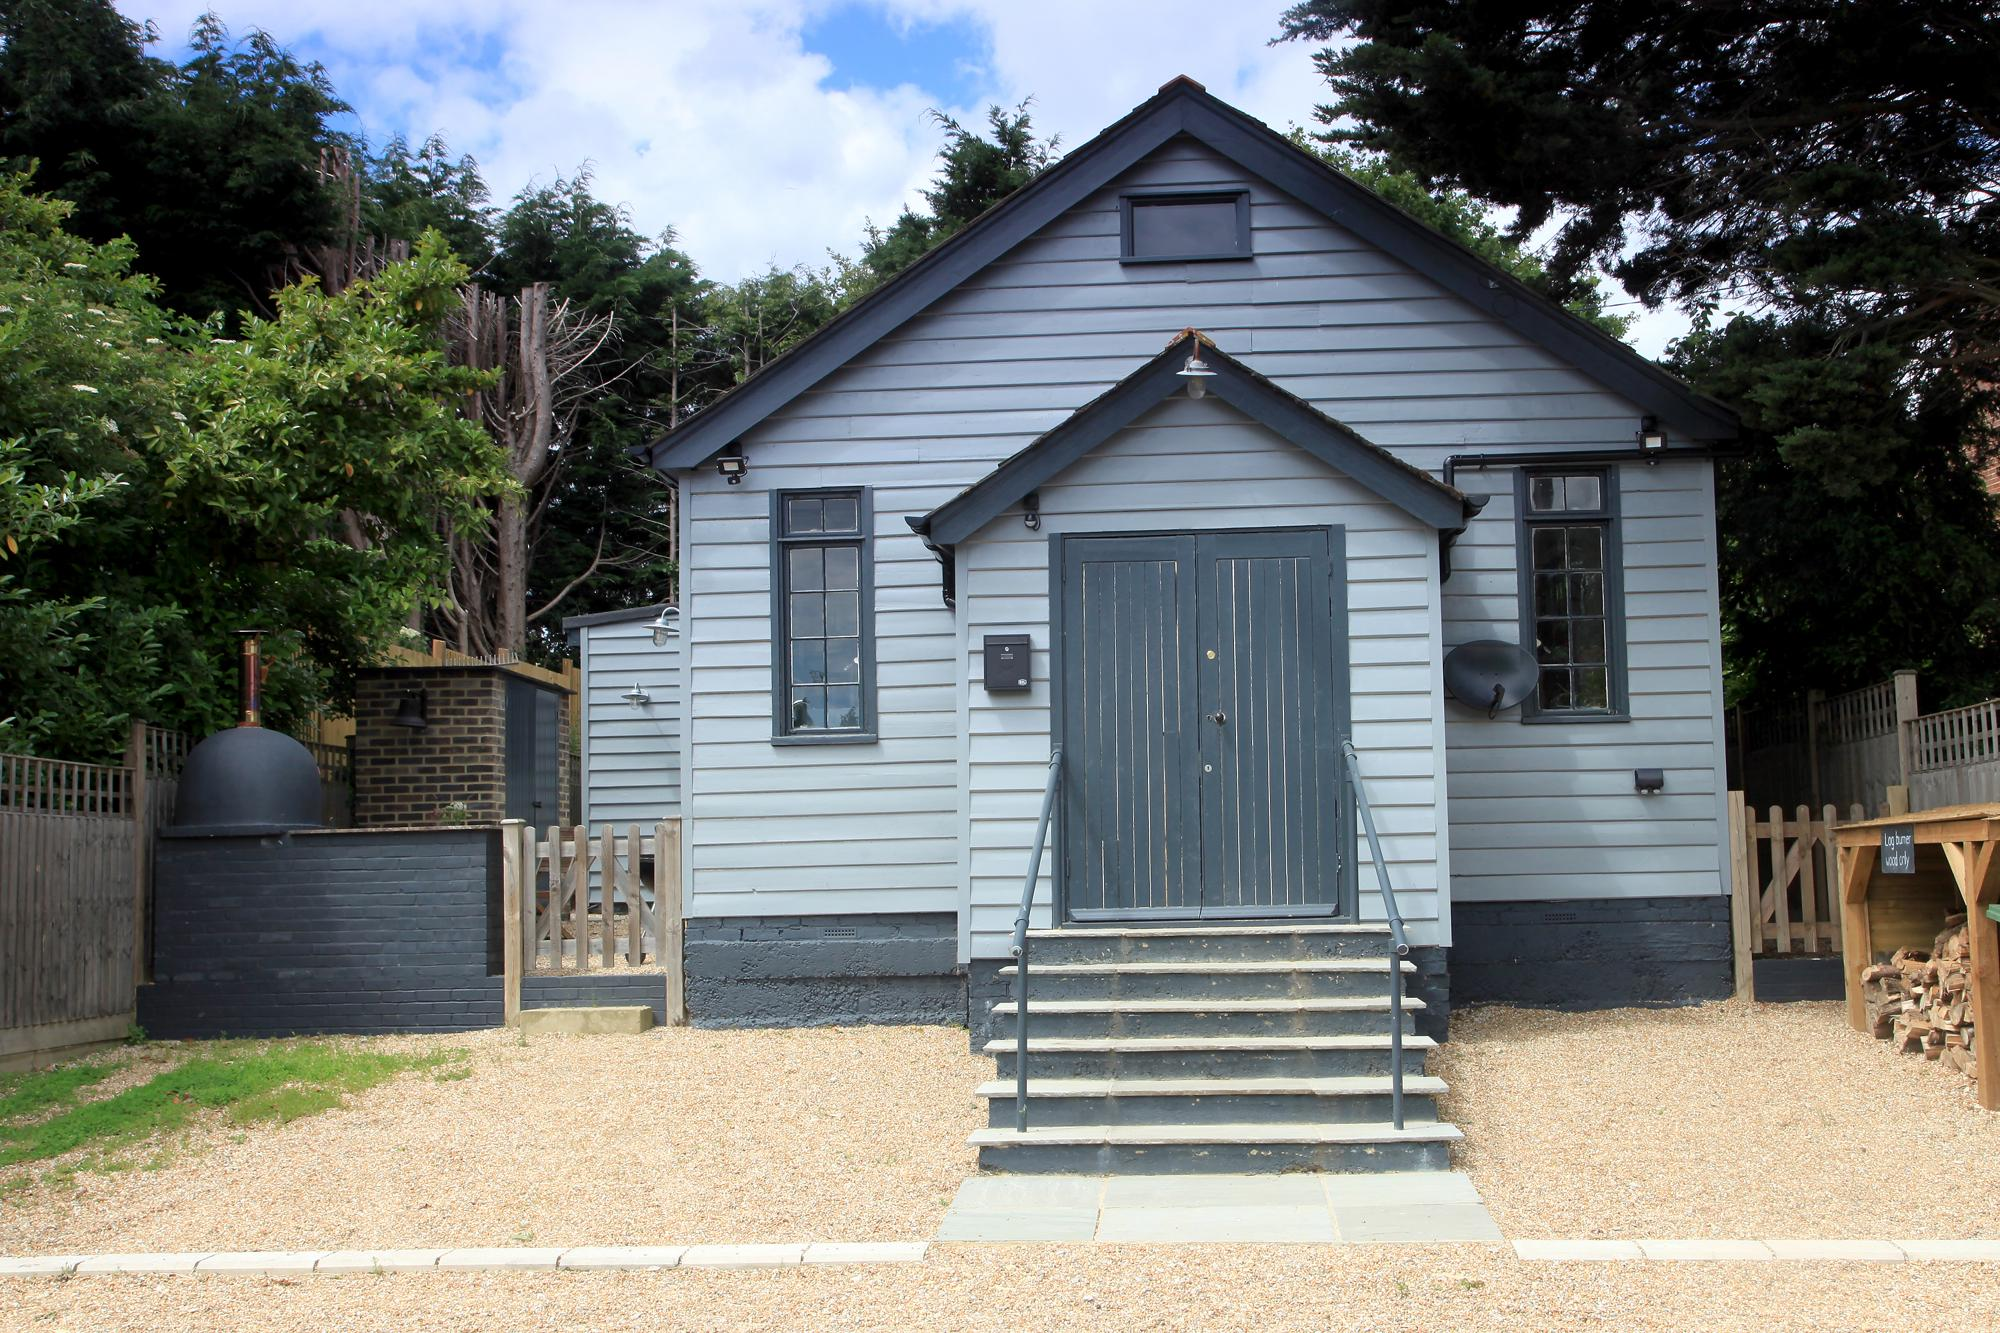 Self-Catering in Ashford holidays at Cool Places